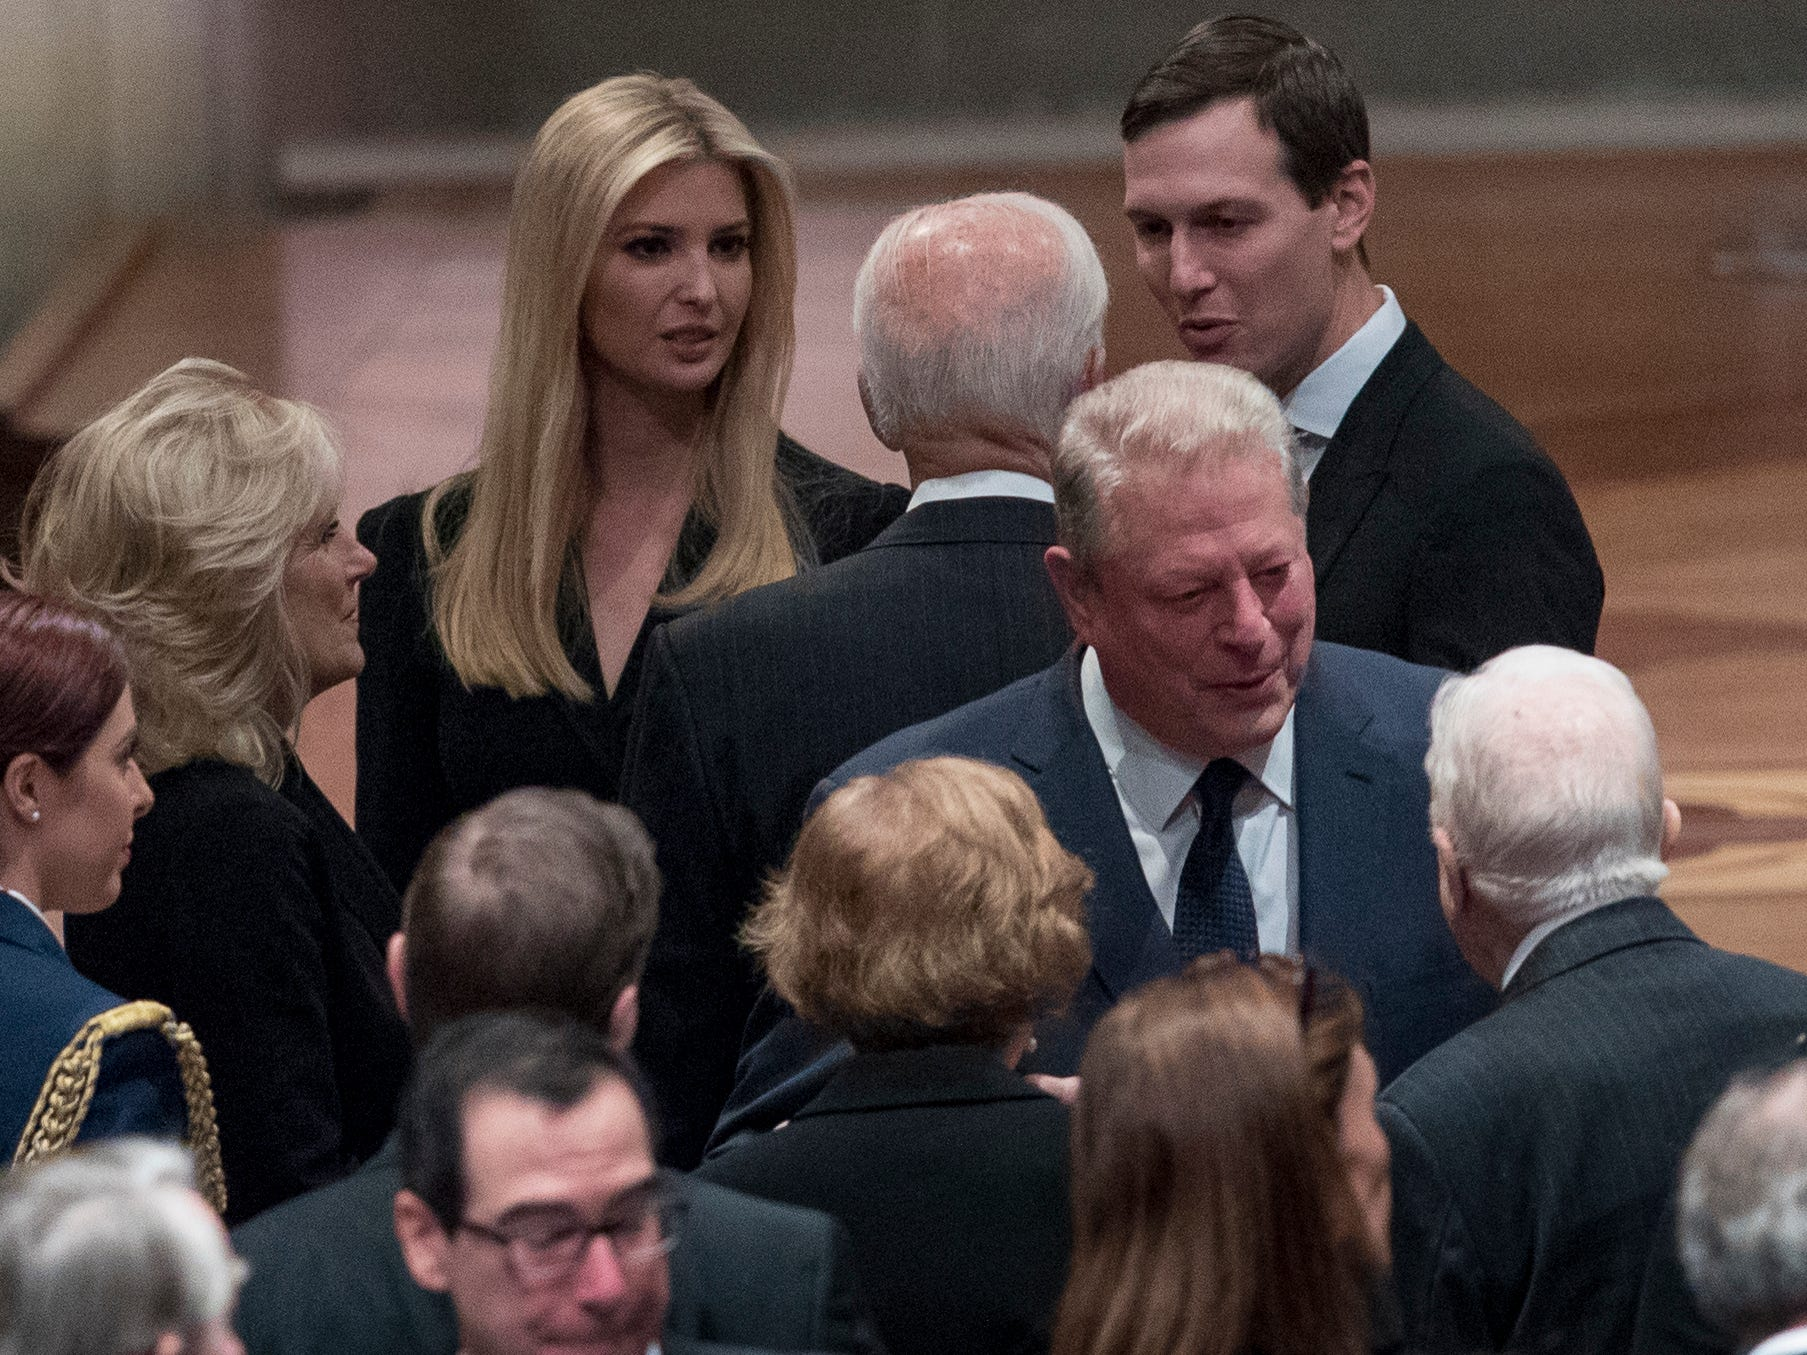 Former Vice President Joe Biden, fourth from left, and his wife Jill Biden, second from left, speak with Ivanka Trump, the daughter of President Donald Trump, third from left, and her husband, President Donald Trump's White House Senior Adviser Jared Kushner, third from right, as former Vice President Al Gore, second from right, speak to former President Jimmy Carter, right, and former first lady Rosalynn Carter, bottom center, before a State Funeral for former President George H.W. Bush at the National Cathedral, Wednesday, Dec. 5, 2018, in Washington.